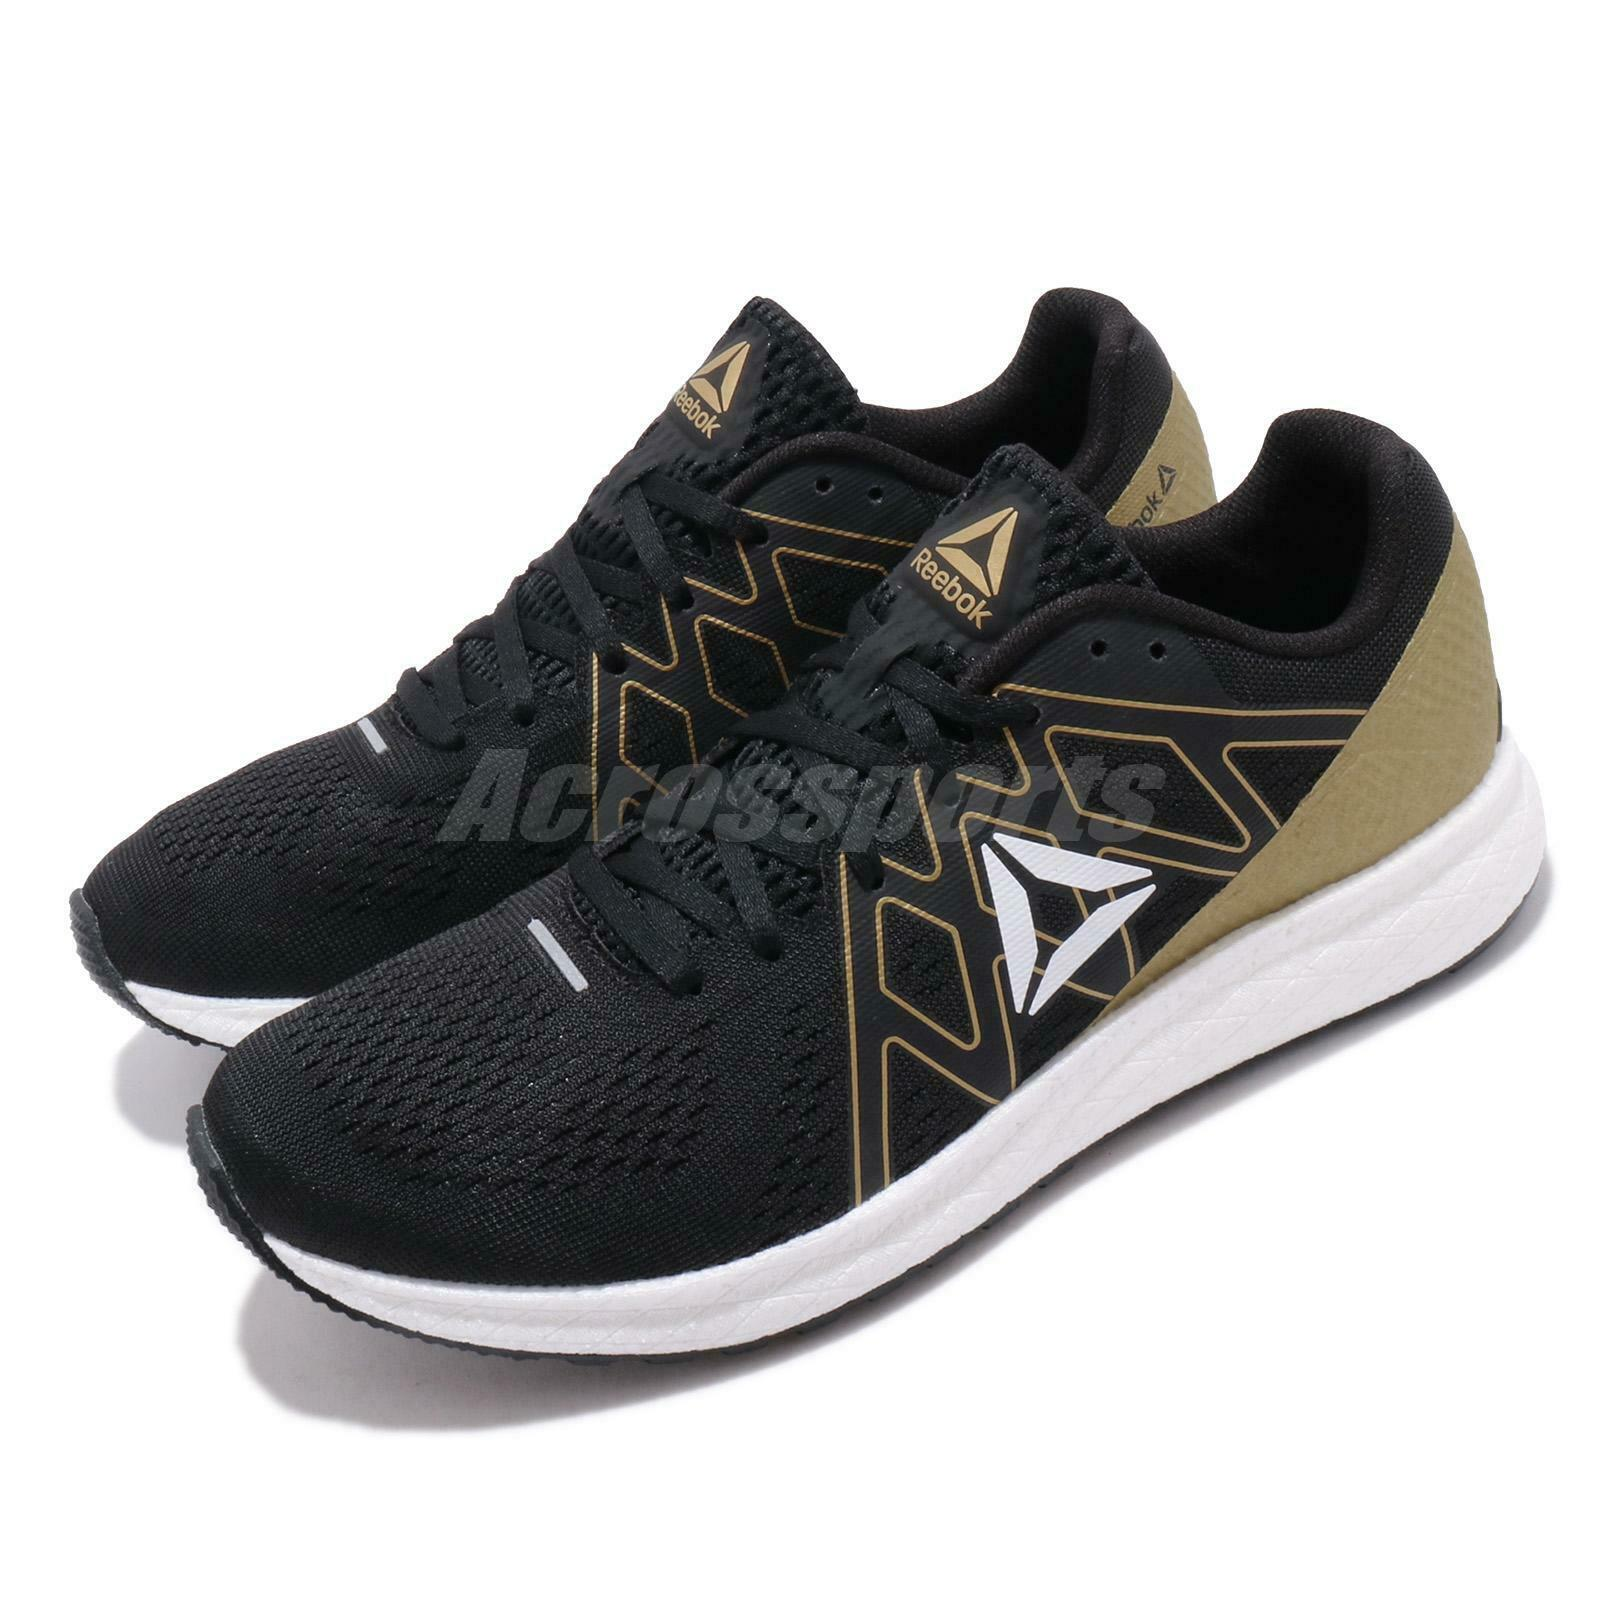 Reebok Forever Floatride Energy Noir or Blanc Comme neuf Hommes Chaussures De Course EF7545